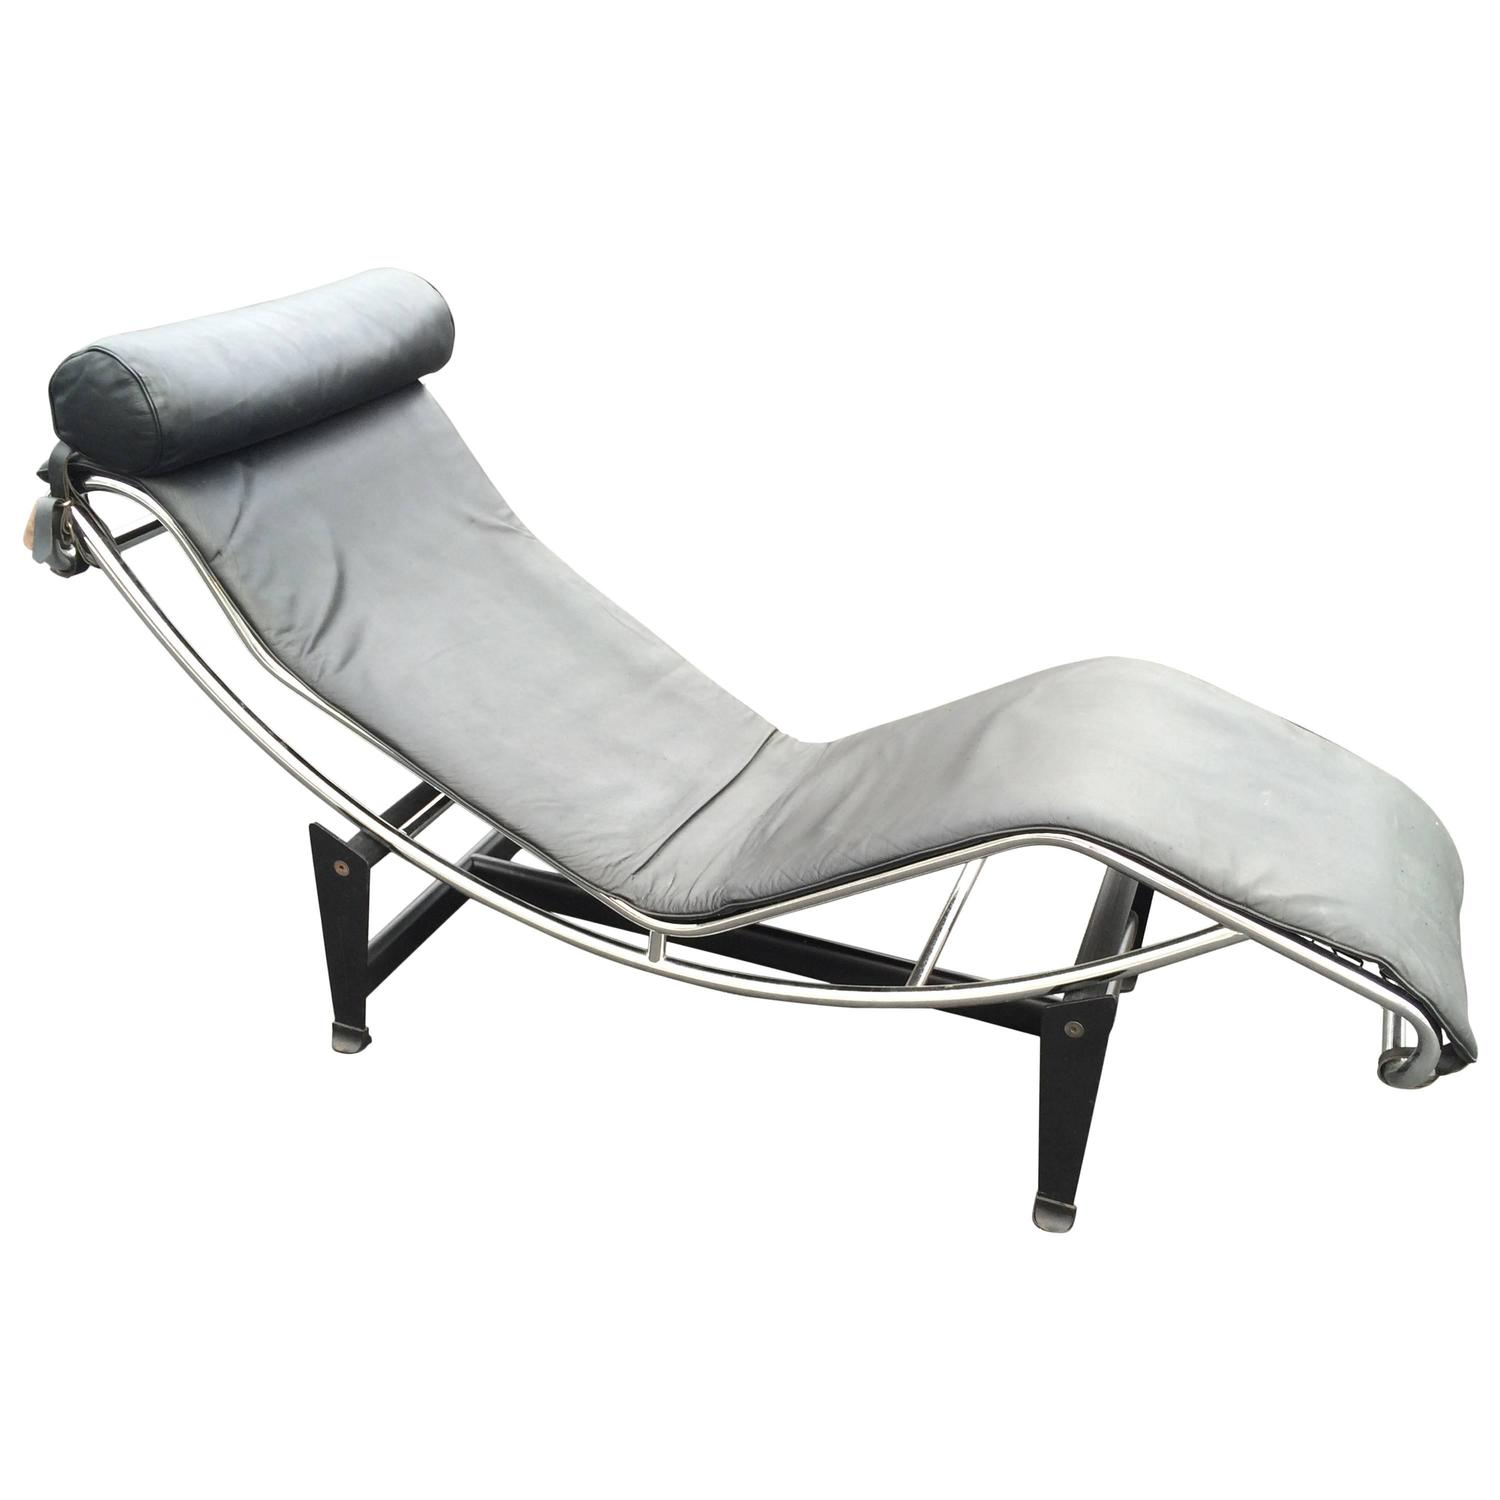 Le corbusier lc4 chaise longue in black leather at 1stdibs for Chaise corbusier